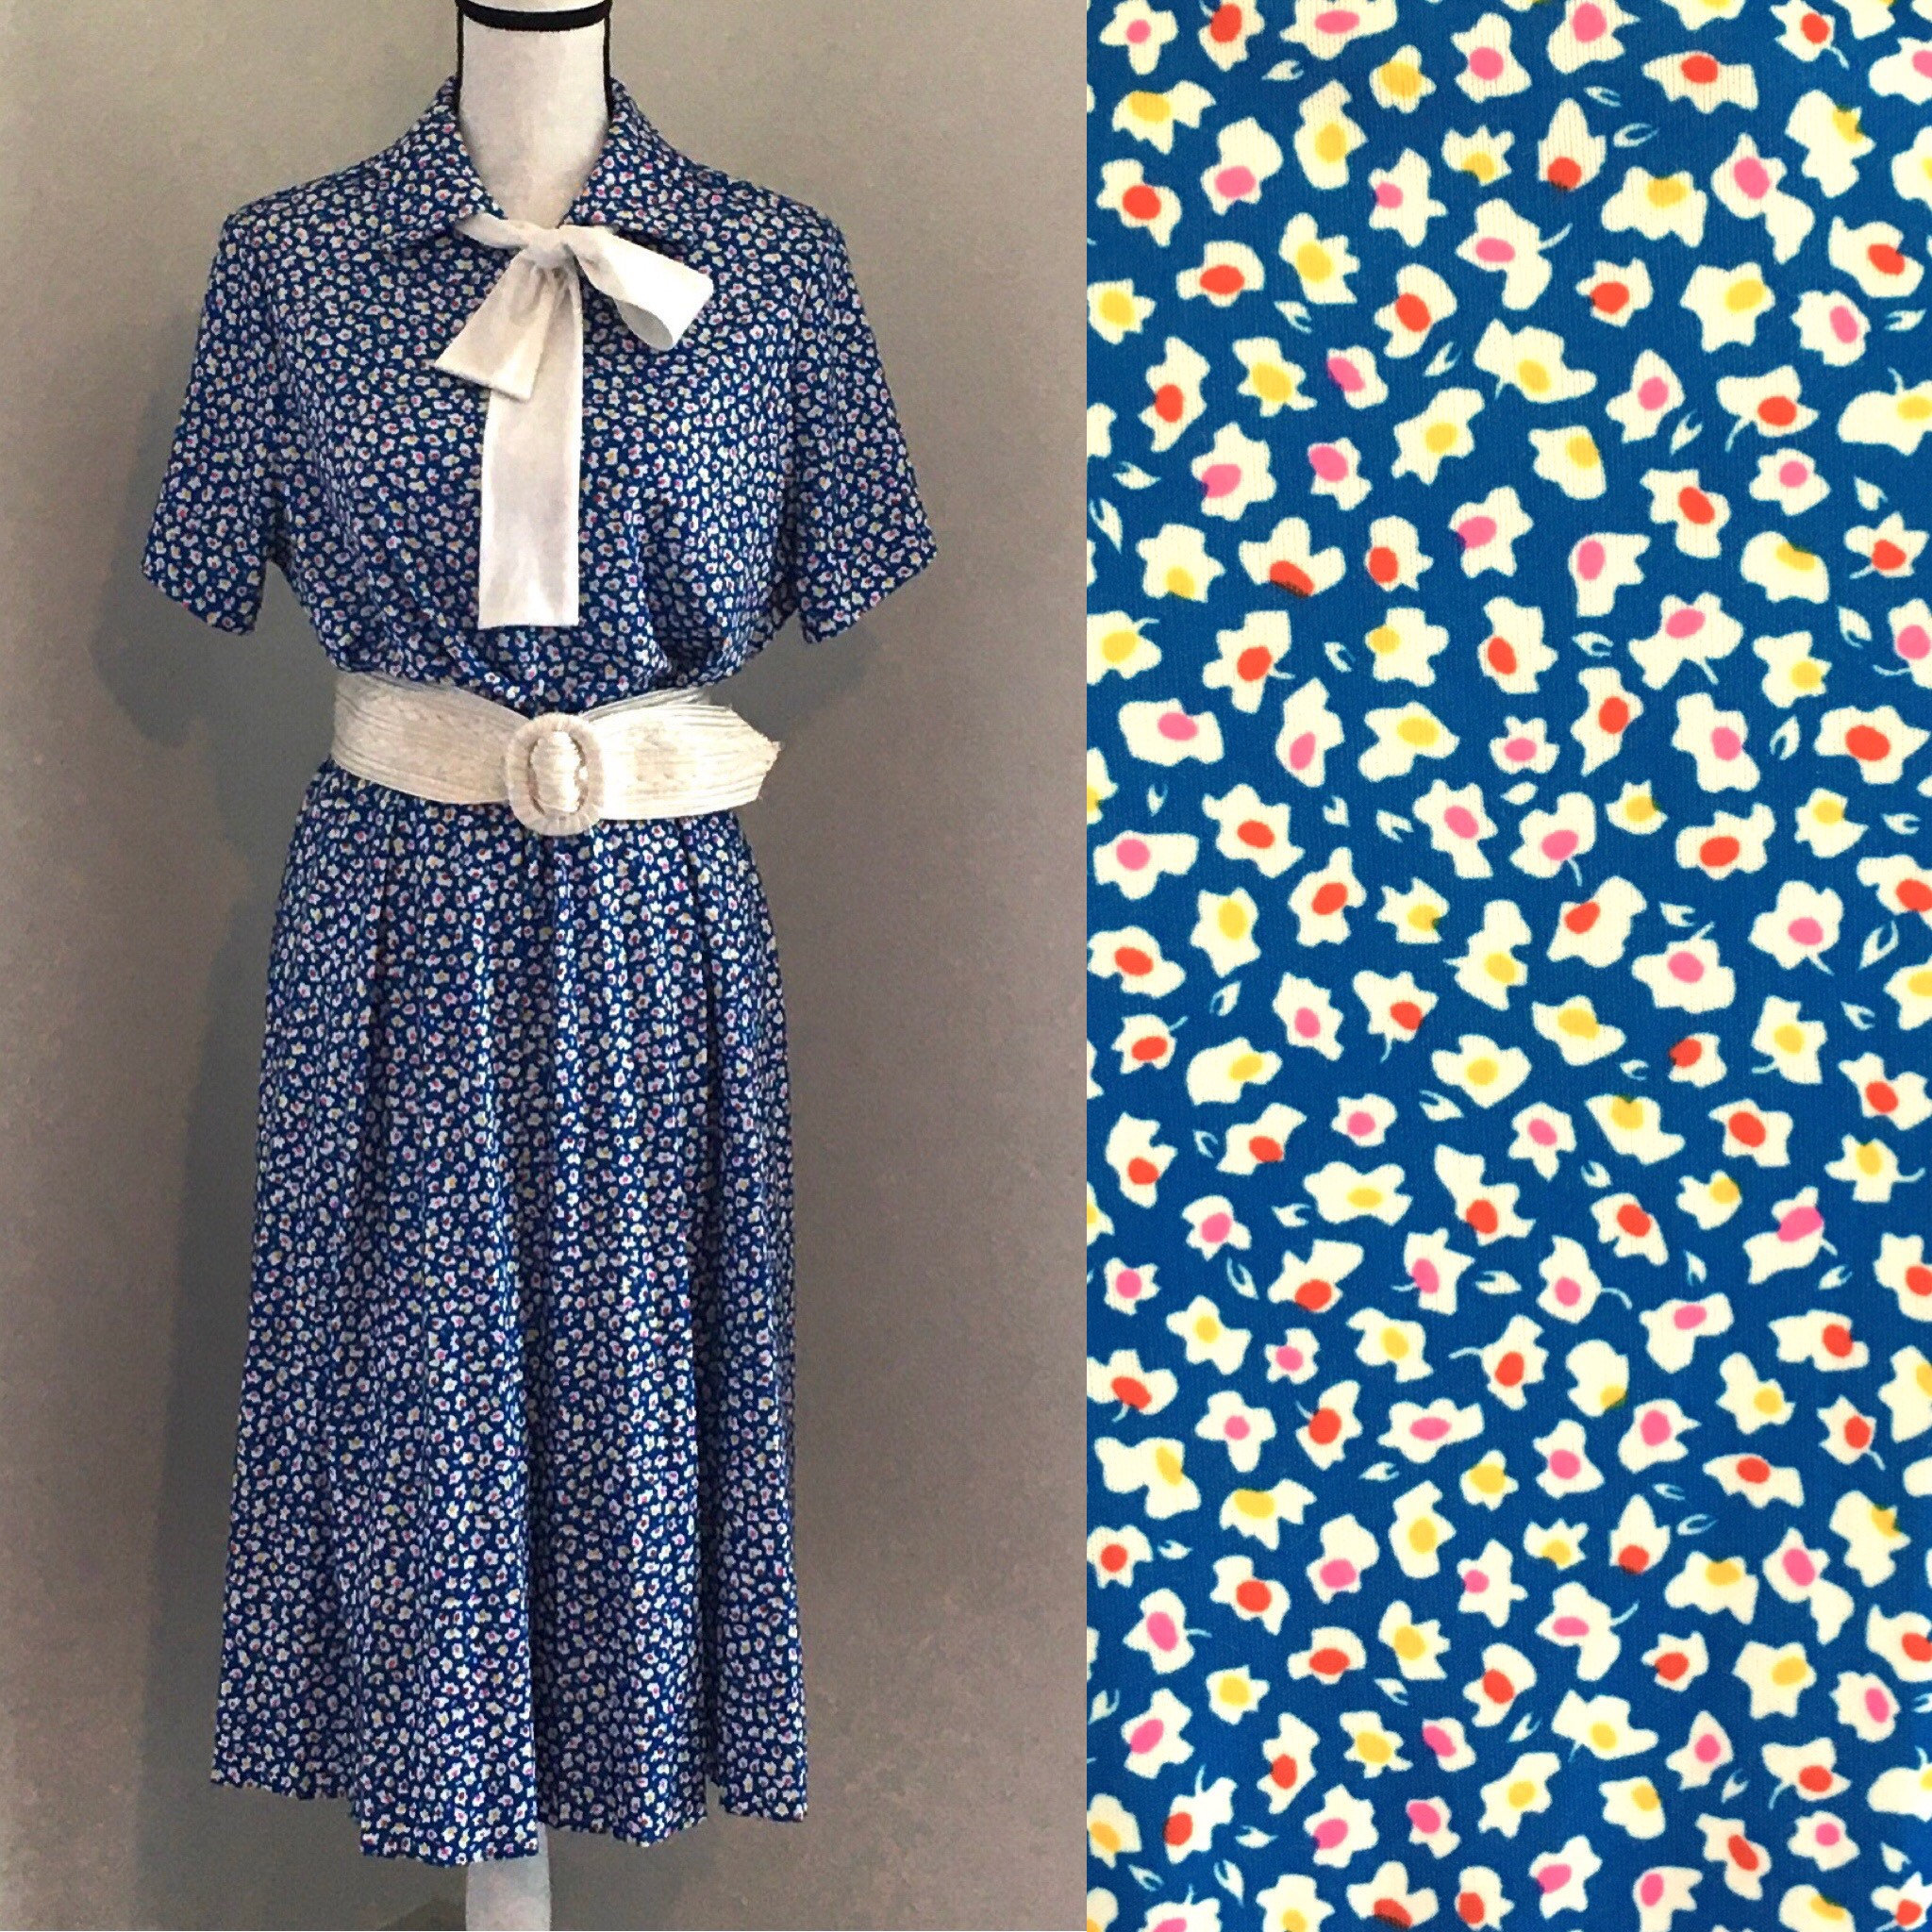 Vintage Scarf Styles -1920s to 1960s Vintage Kenley Casuals, 1960S Blue Floral Dress, 1960S Dress With Tie Collar, Vintage Plus Size Dress, Vintage Collar $25.00 AT vintagedancer.com